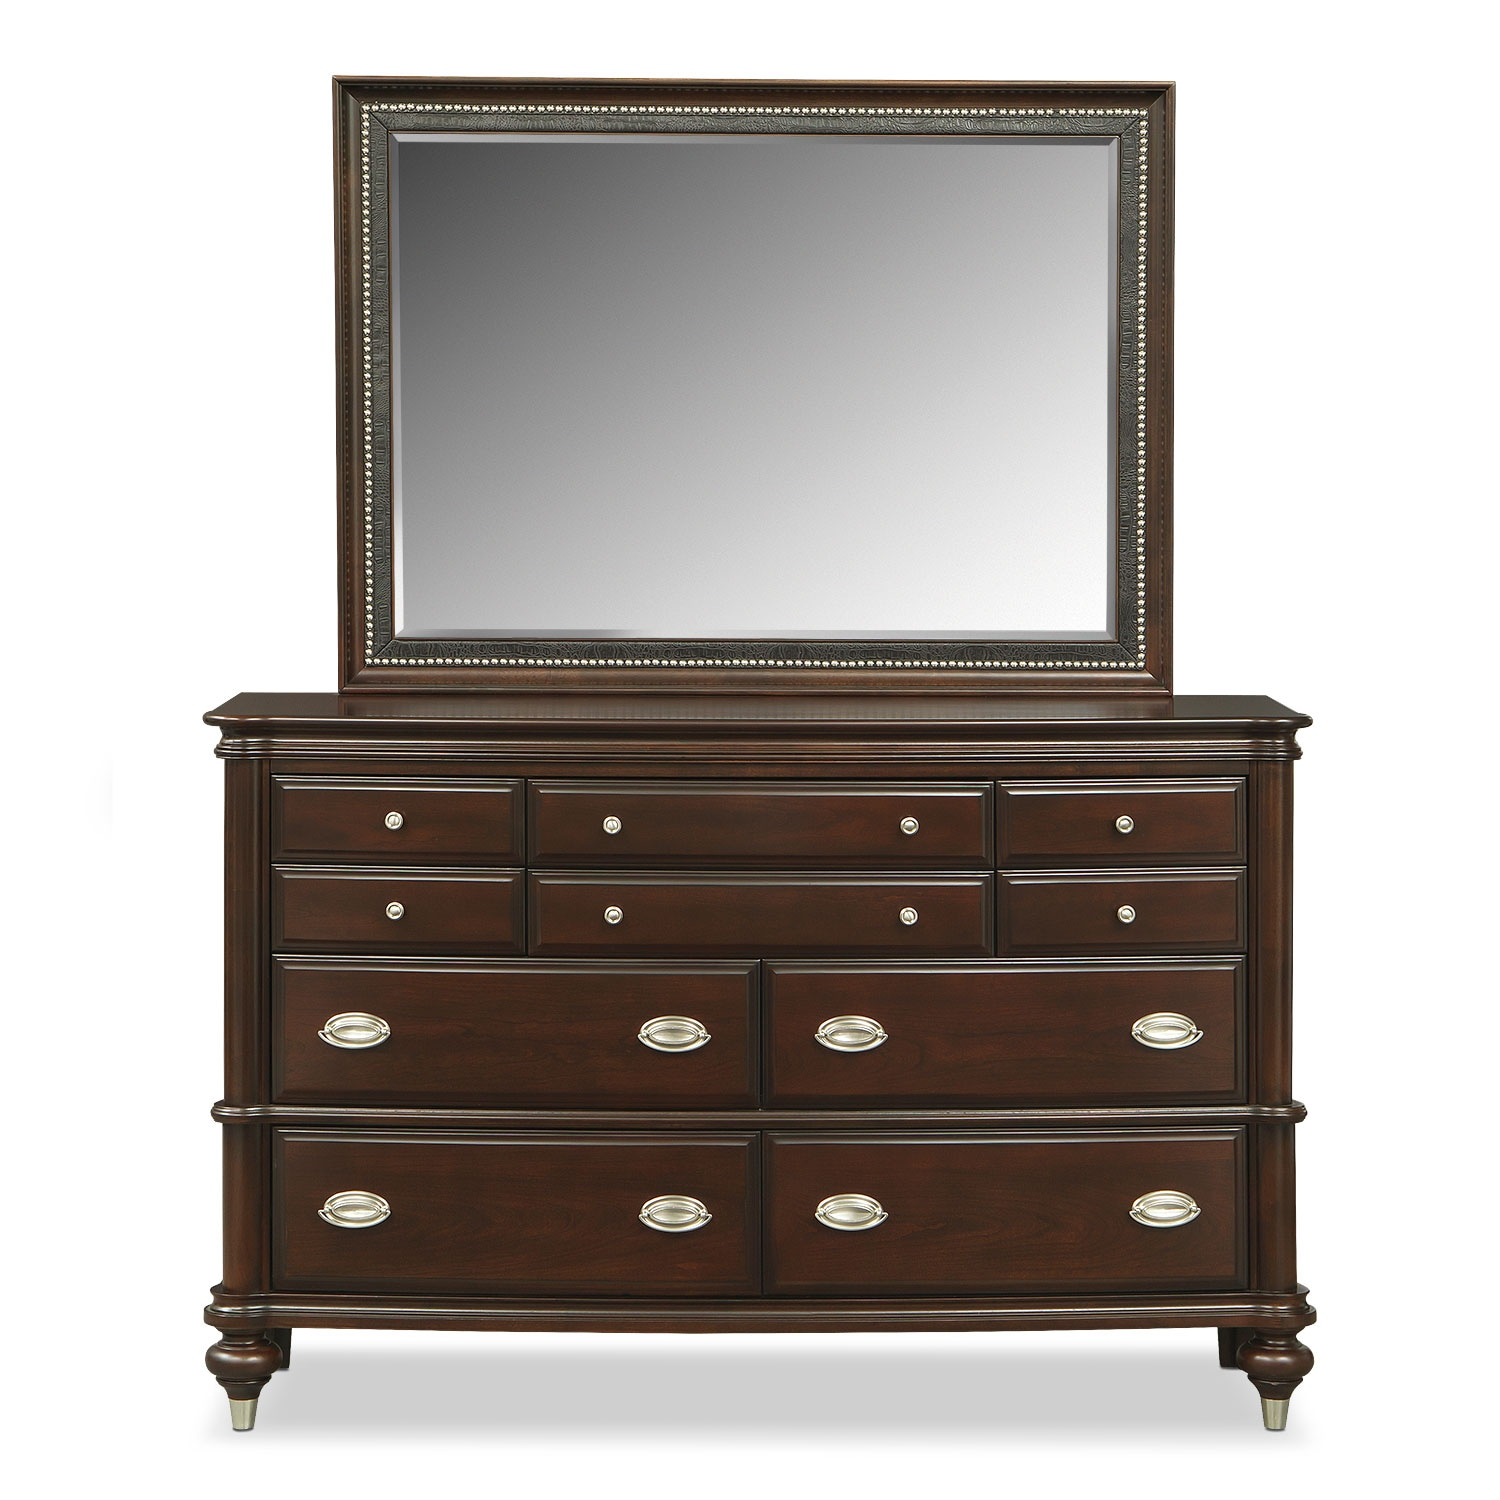 value city furniture dressers esquire dresser and mirror merlot value city furniture 17690